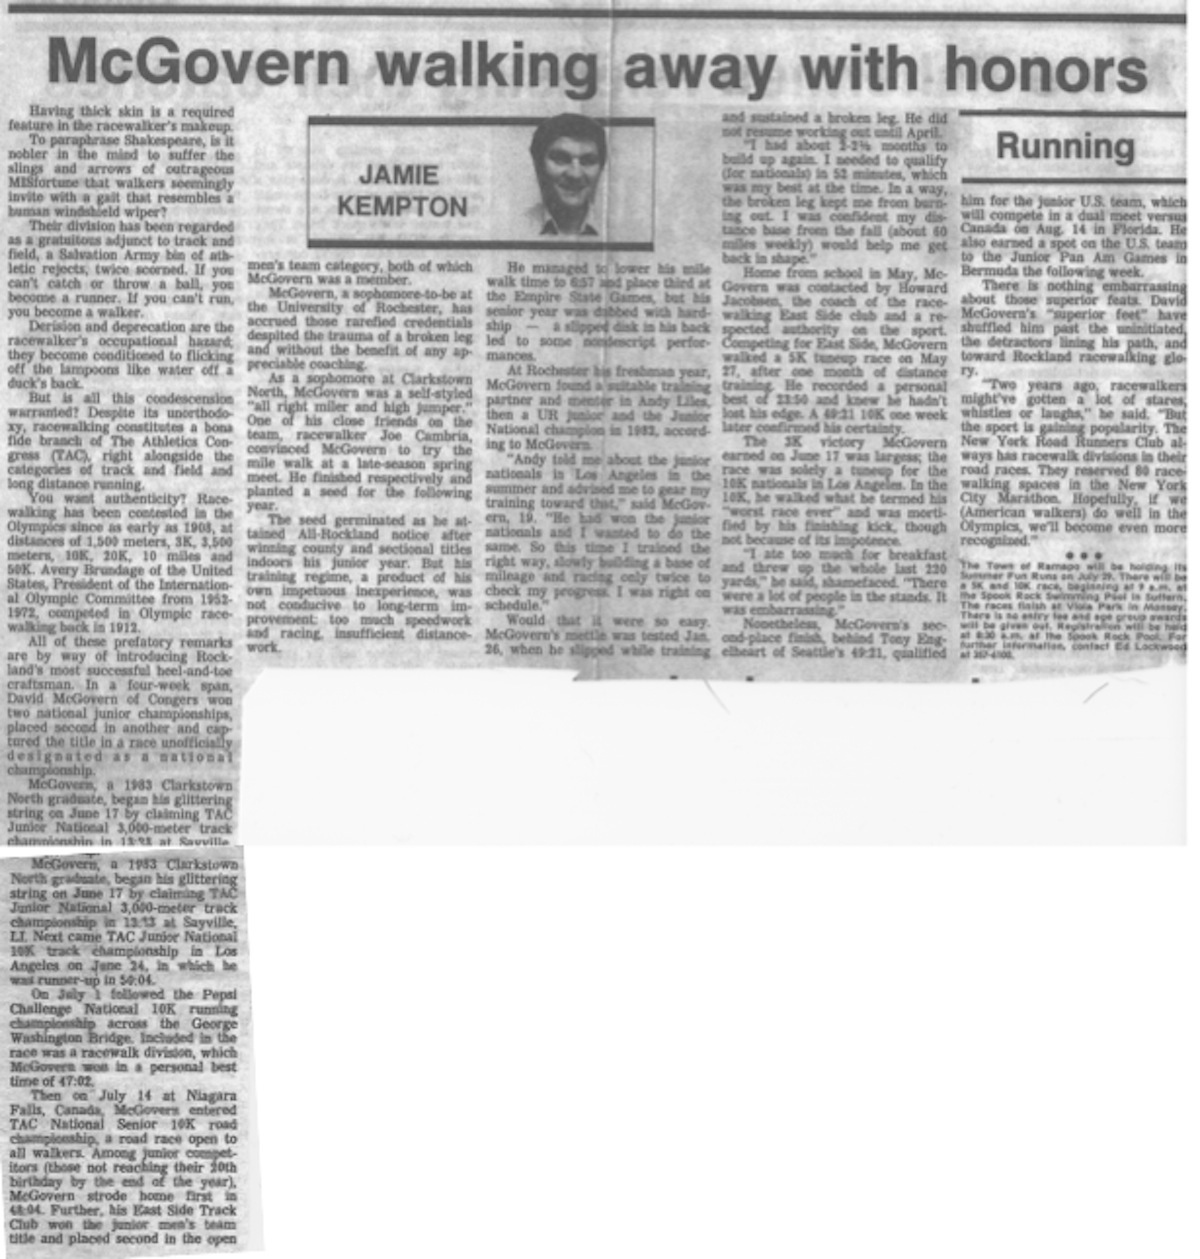 McGovern Walking Away with Honors